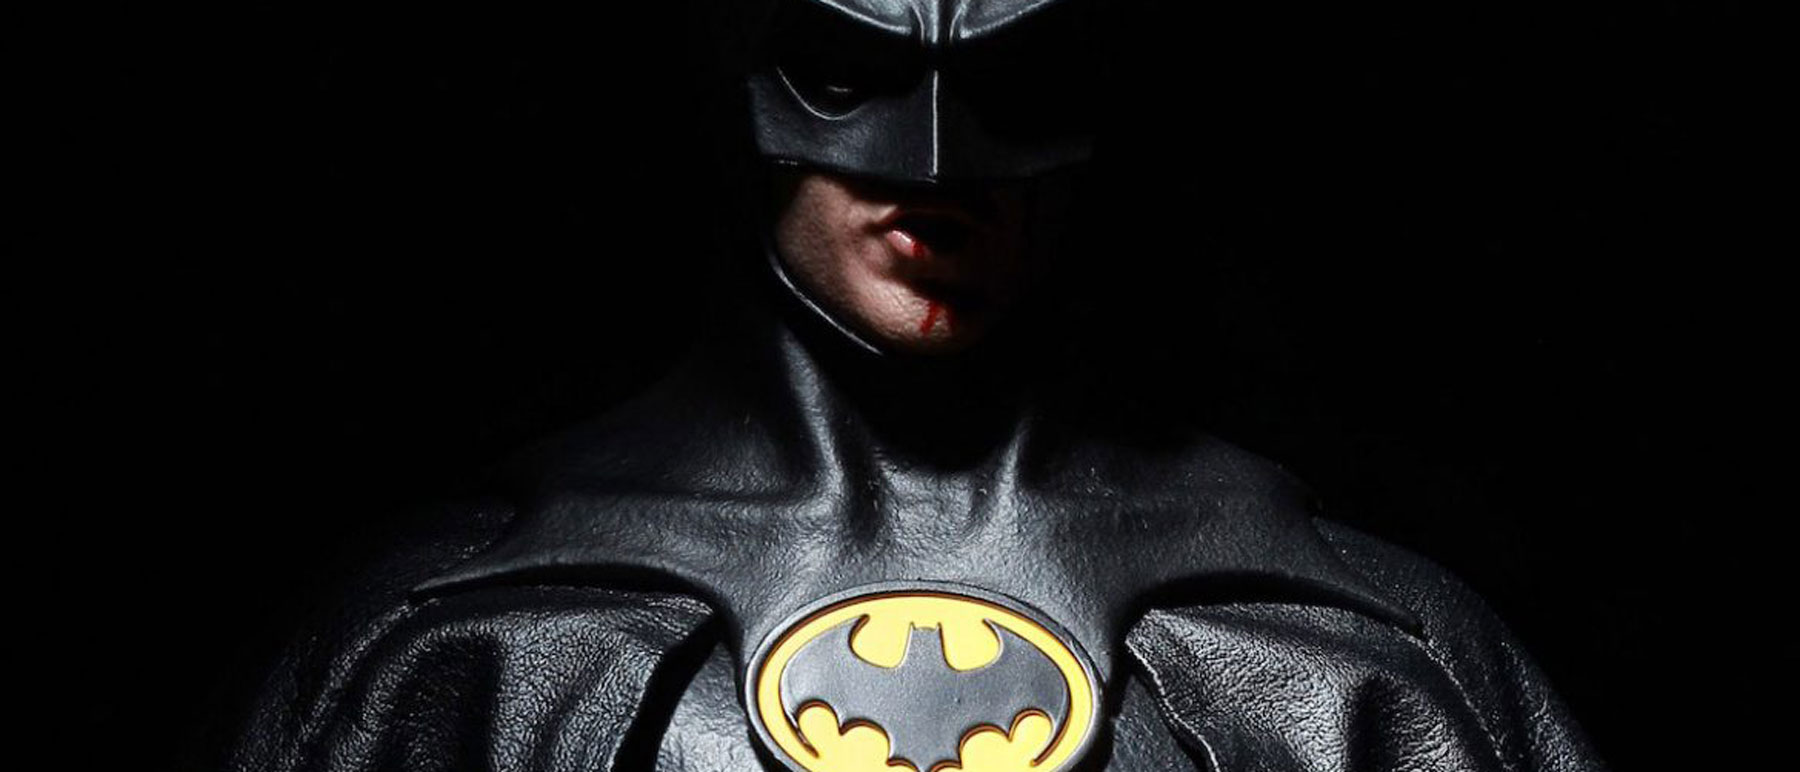 EXCLUSIVE: Michael Keaton Has Signed On To Star As Bruce Wayne In An HBO Max Batman Beyond Series | Small Screen